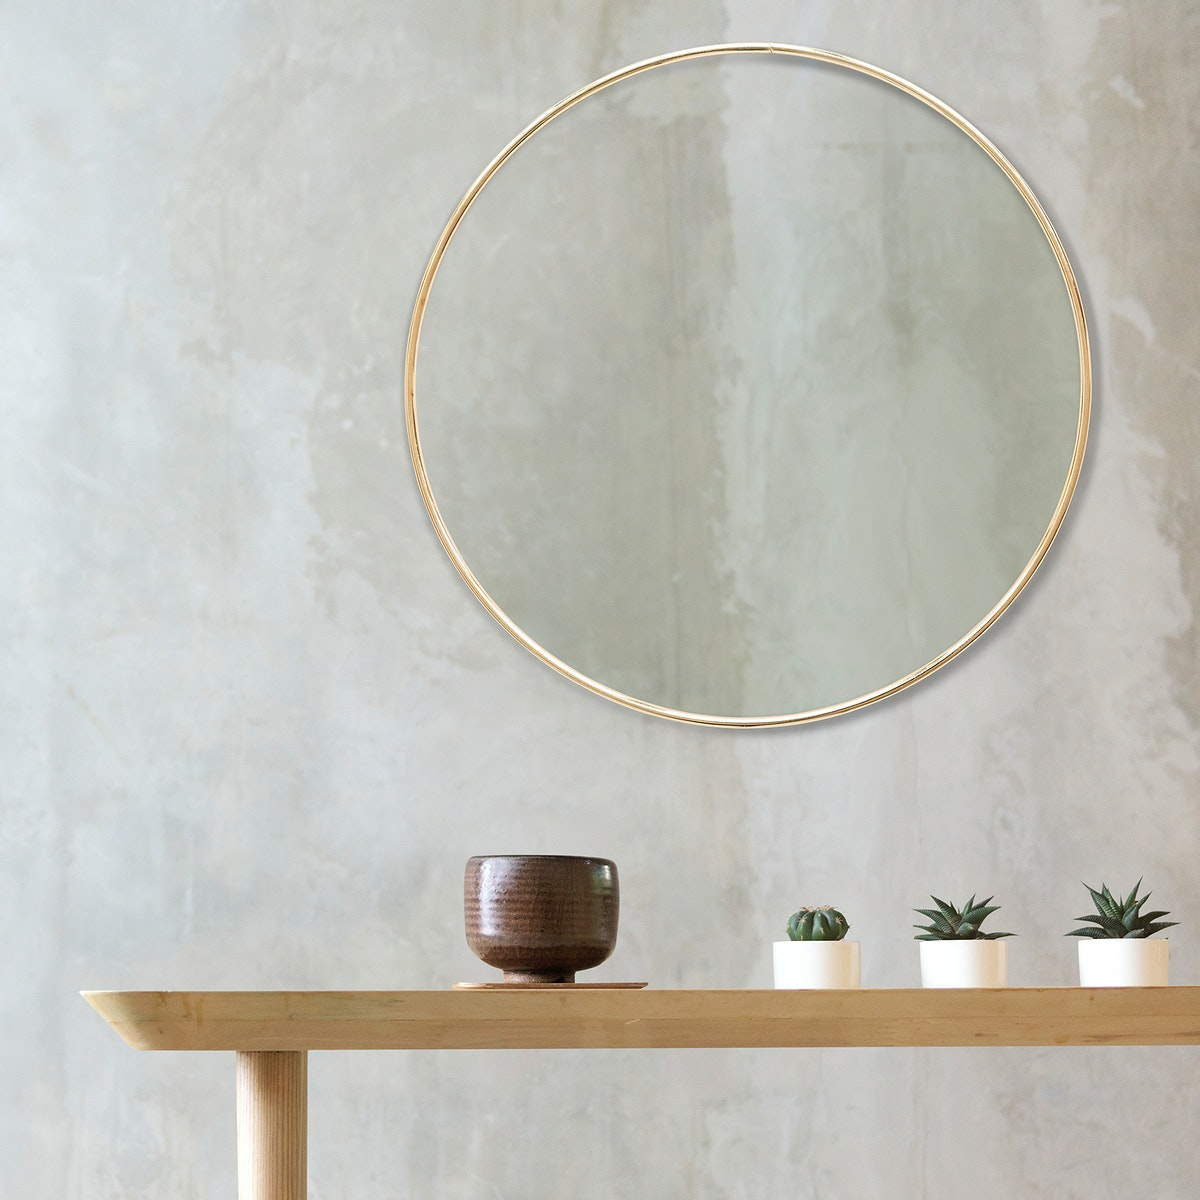 Golden frame on a wall by mini cactuses